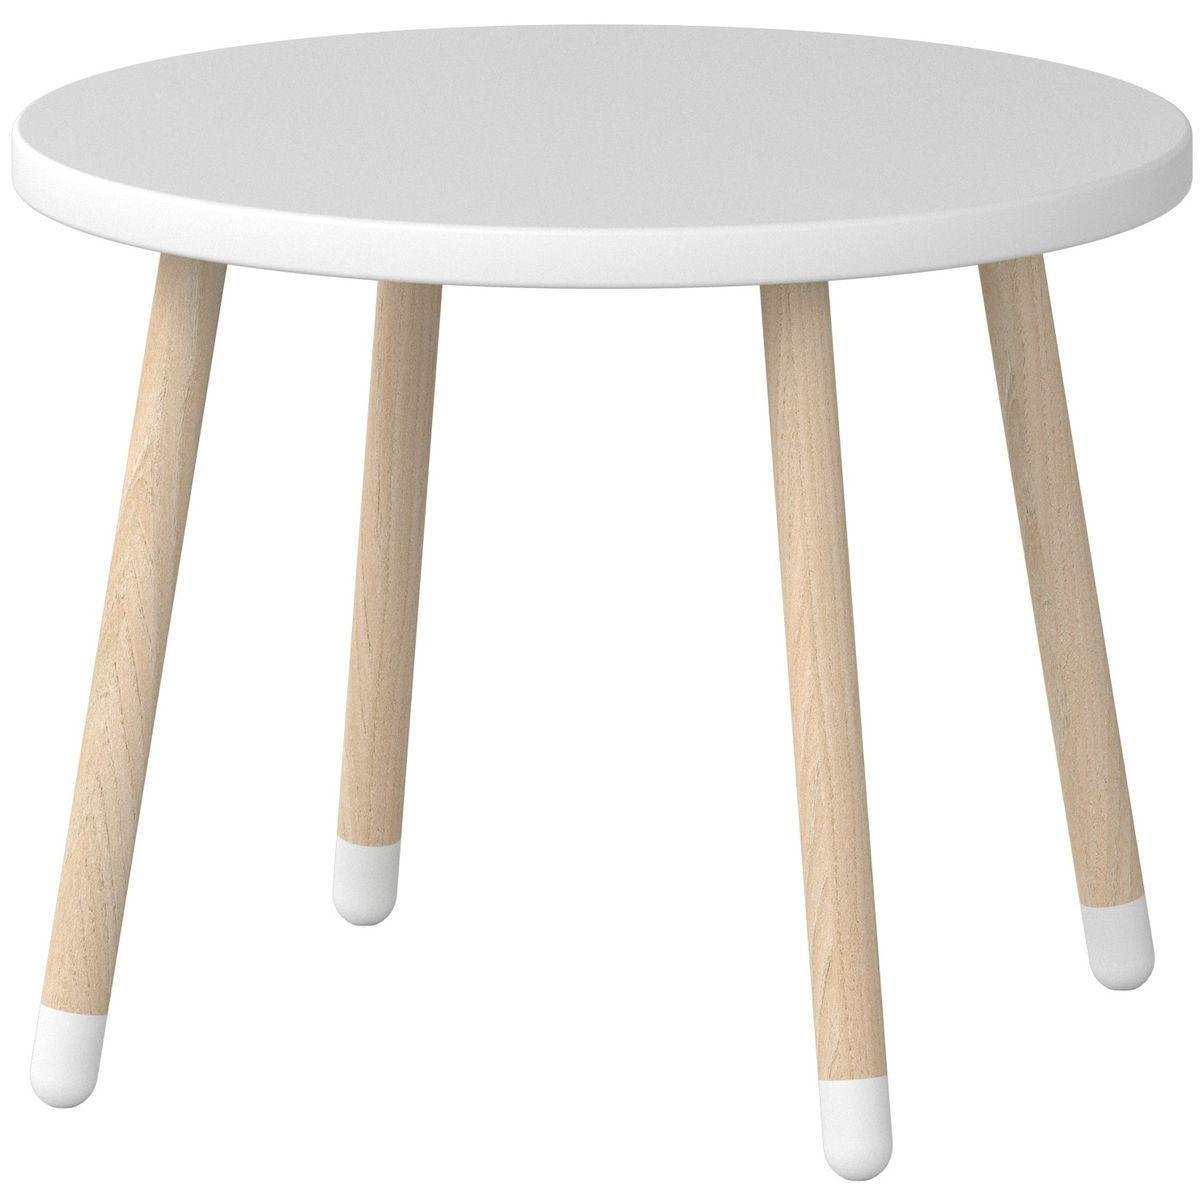 PLAY by Flexa Petite table enfant 60 cm Blanche